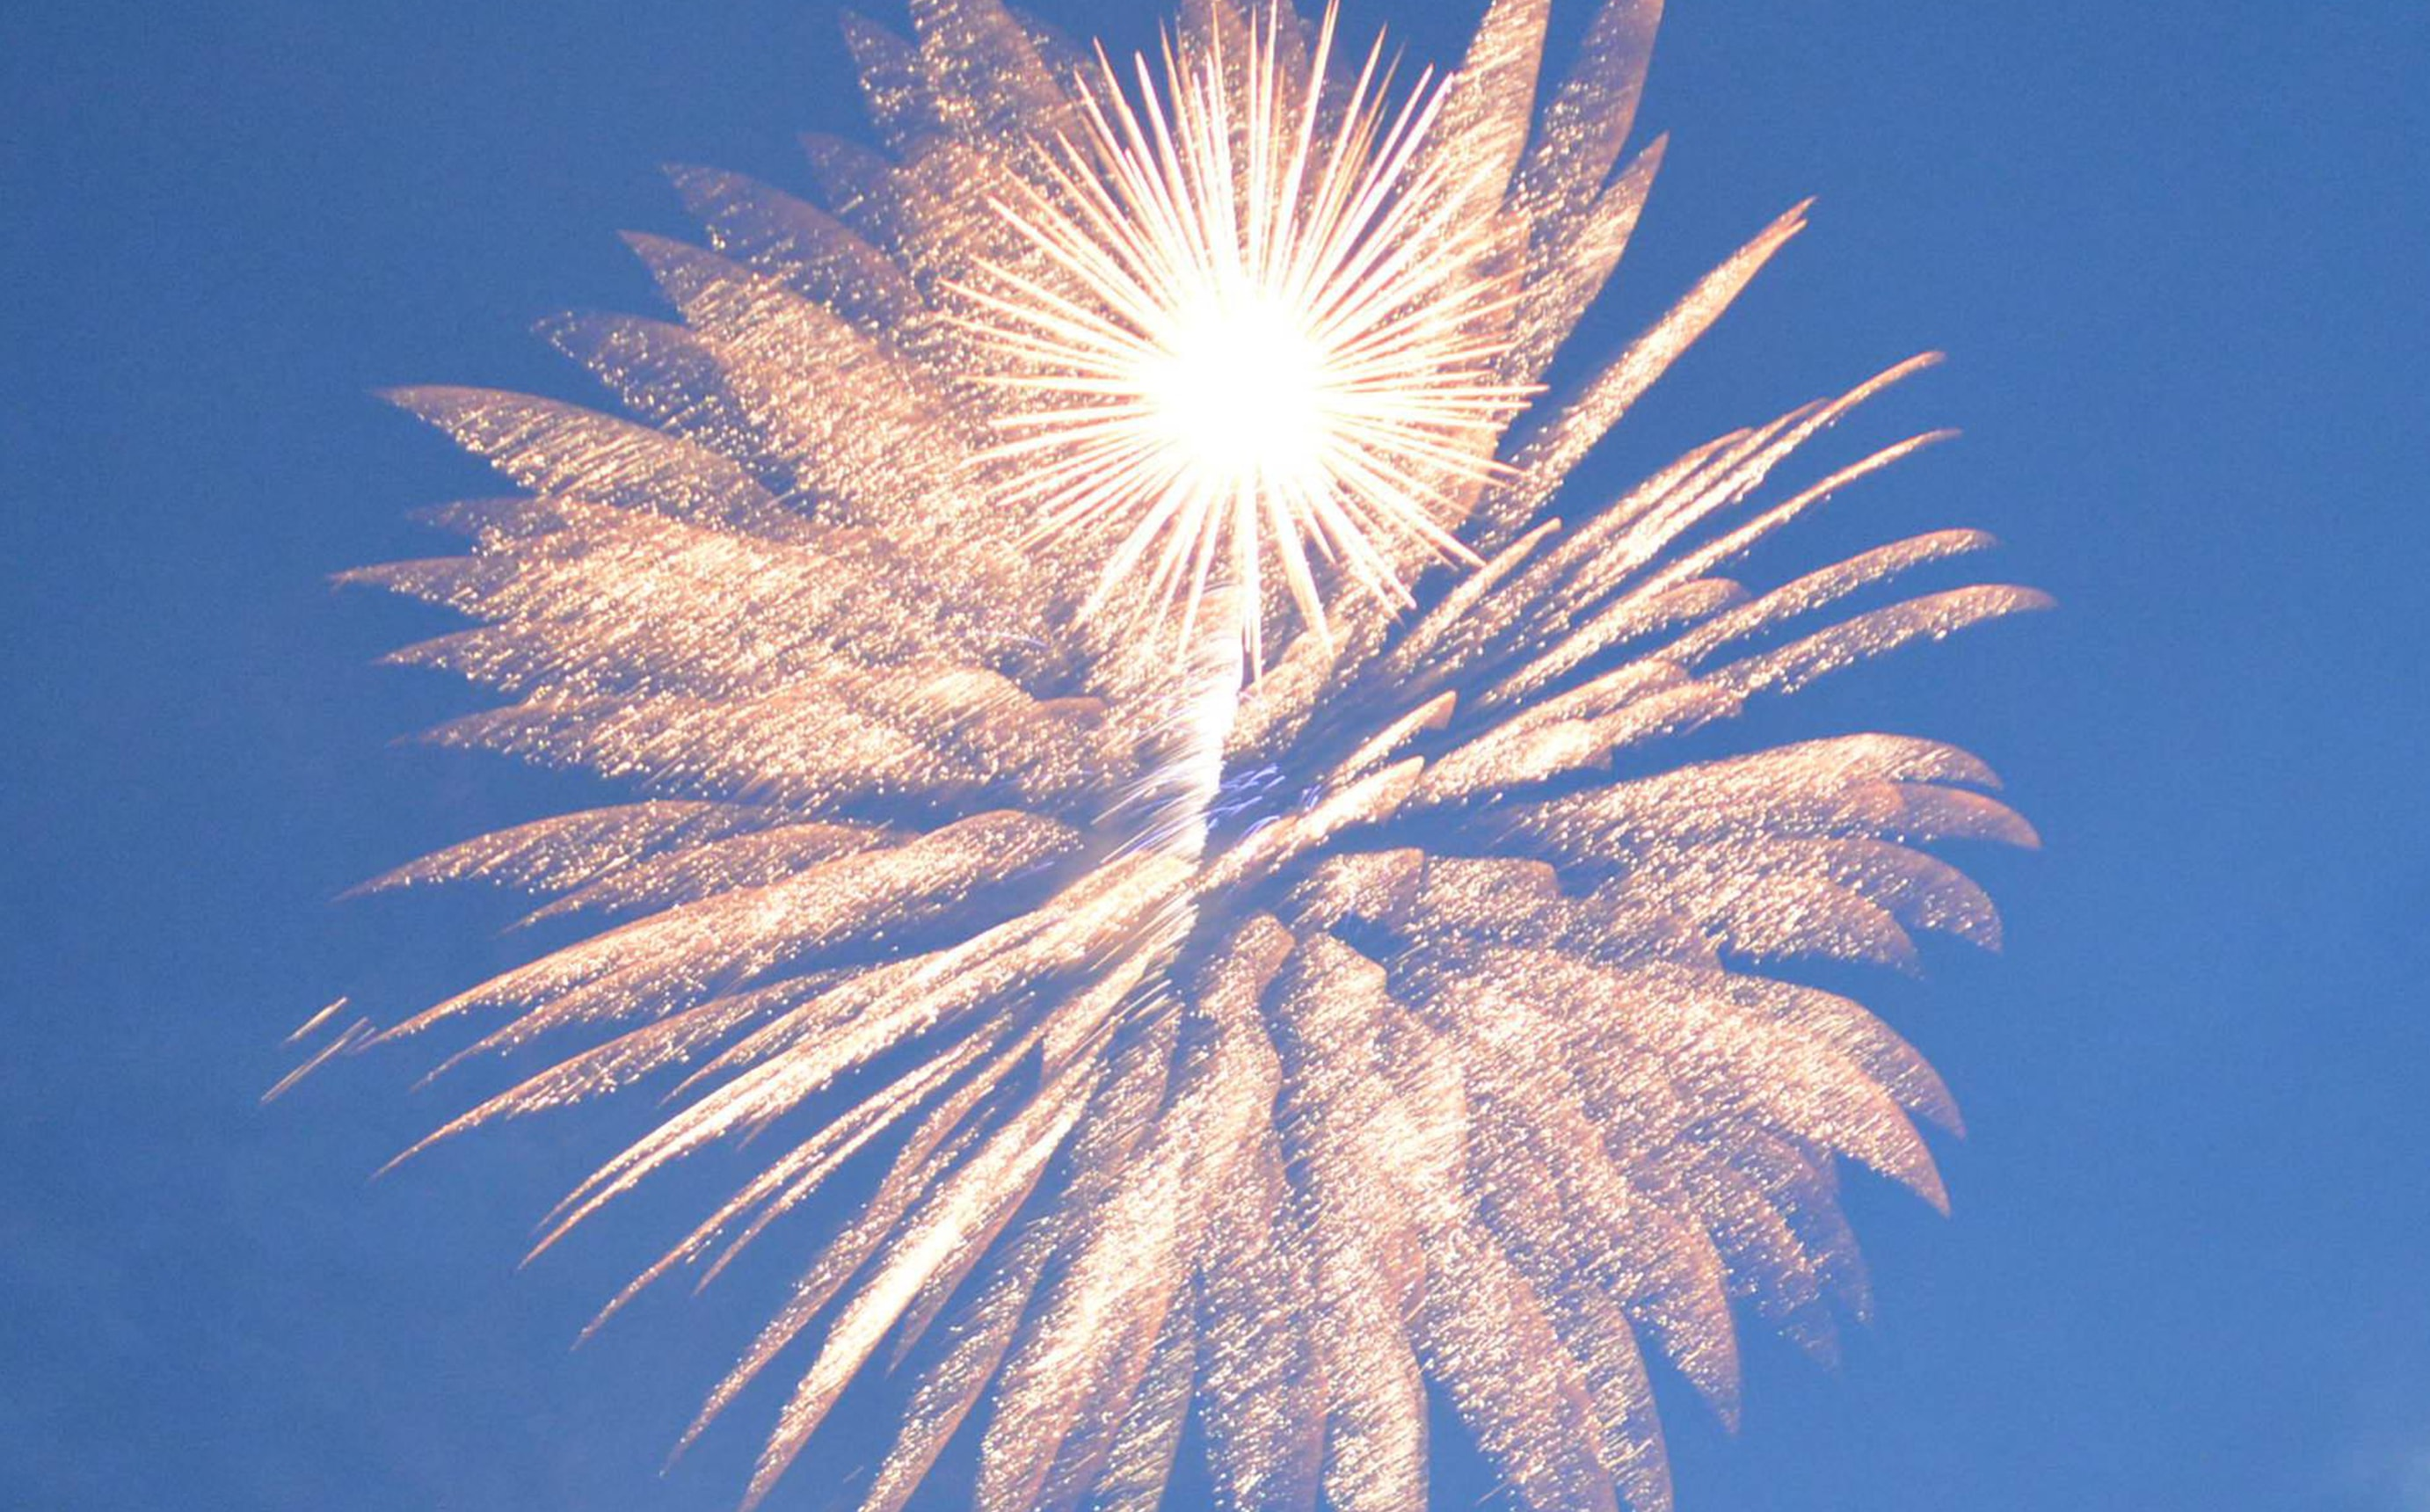 A Firework Solutions Limited display, with a gold firework on a blue sky